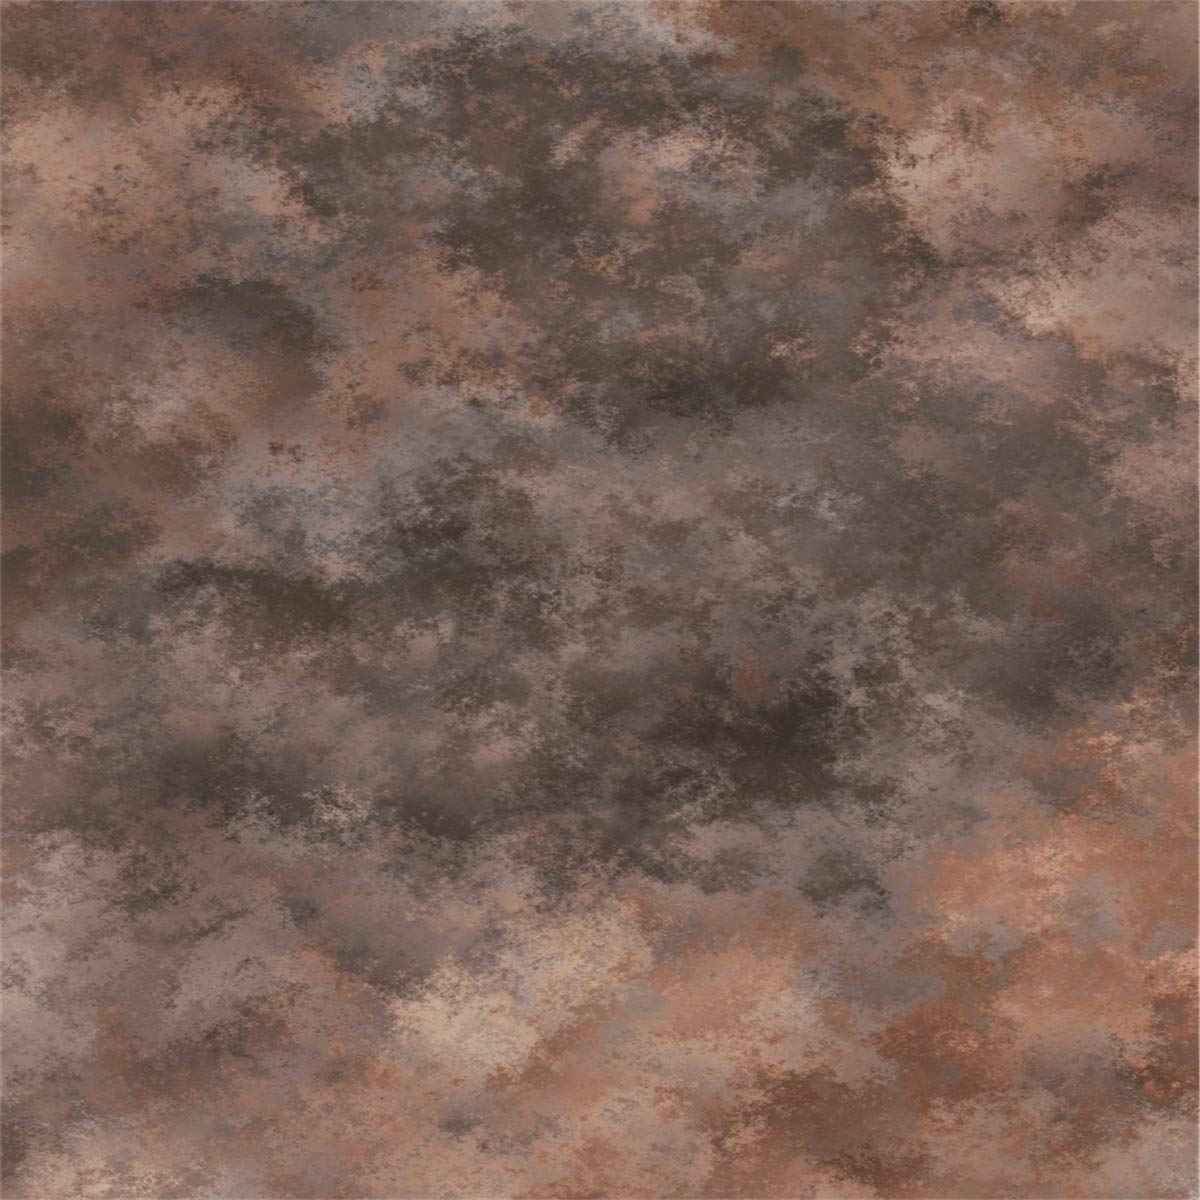 Dark Brown Mottled Microfiber Photography Backdrop Portrait Photo Background 150x220cm 5x7ft